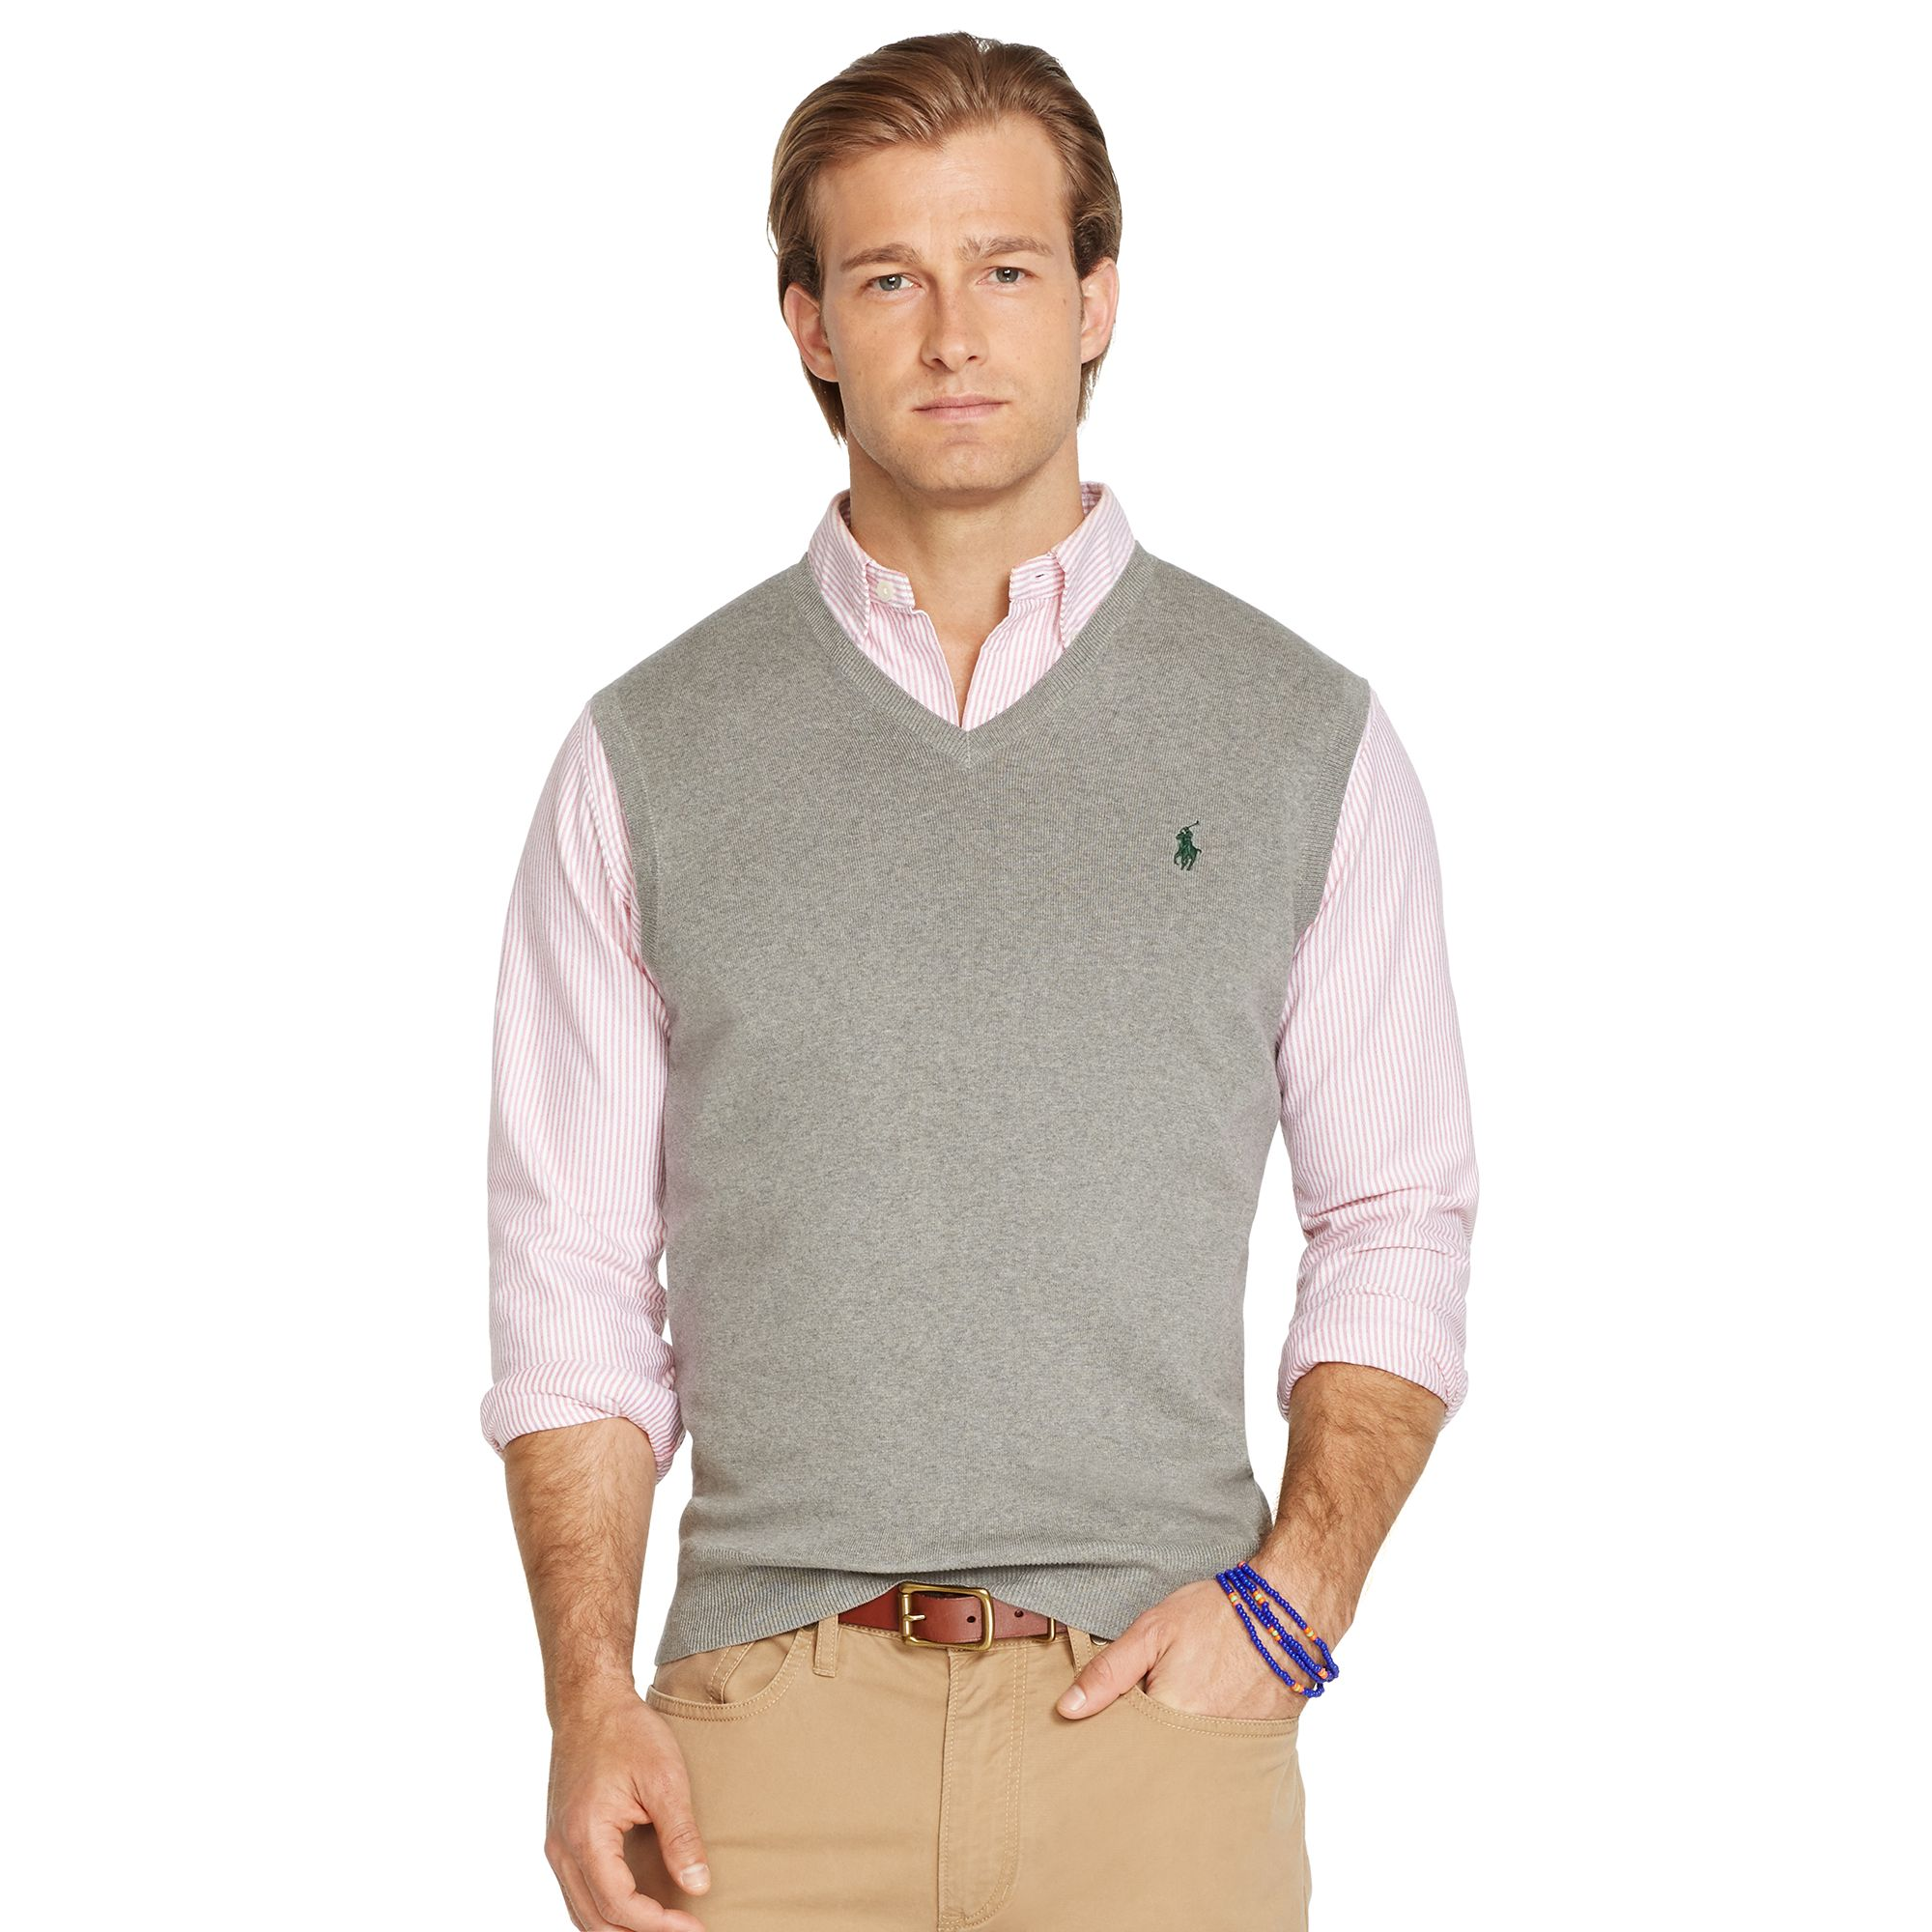 Ralph Lauren Latest Fall Winter Coats and Western Dresses Sweaters Collection for Men and Women 2014-2015 (27)